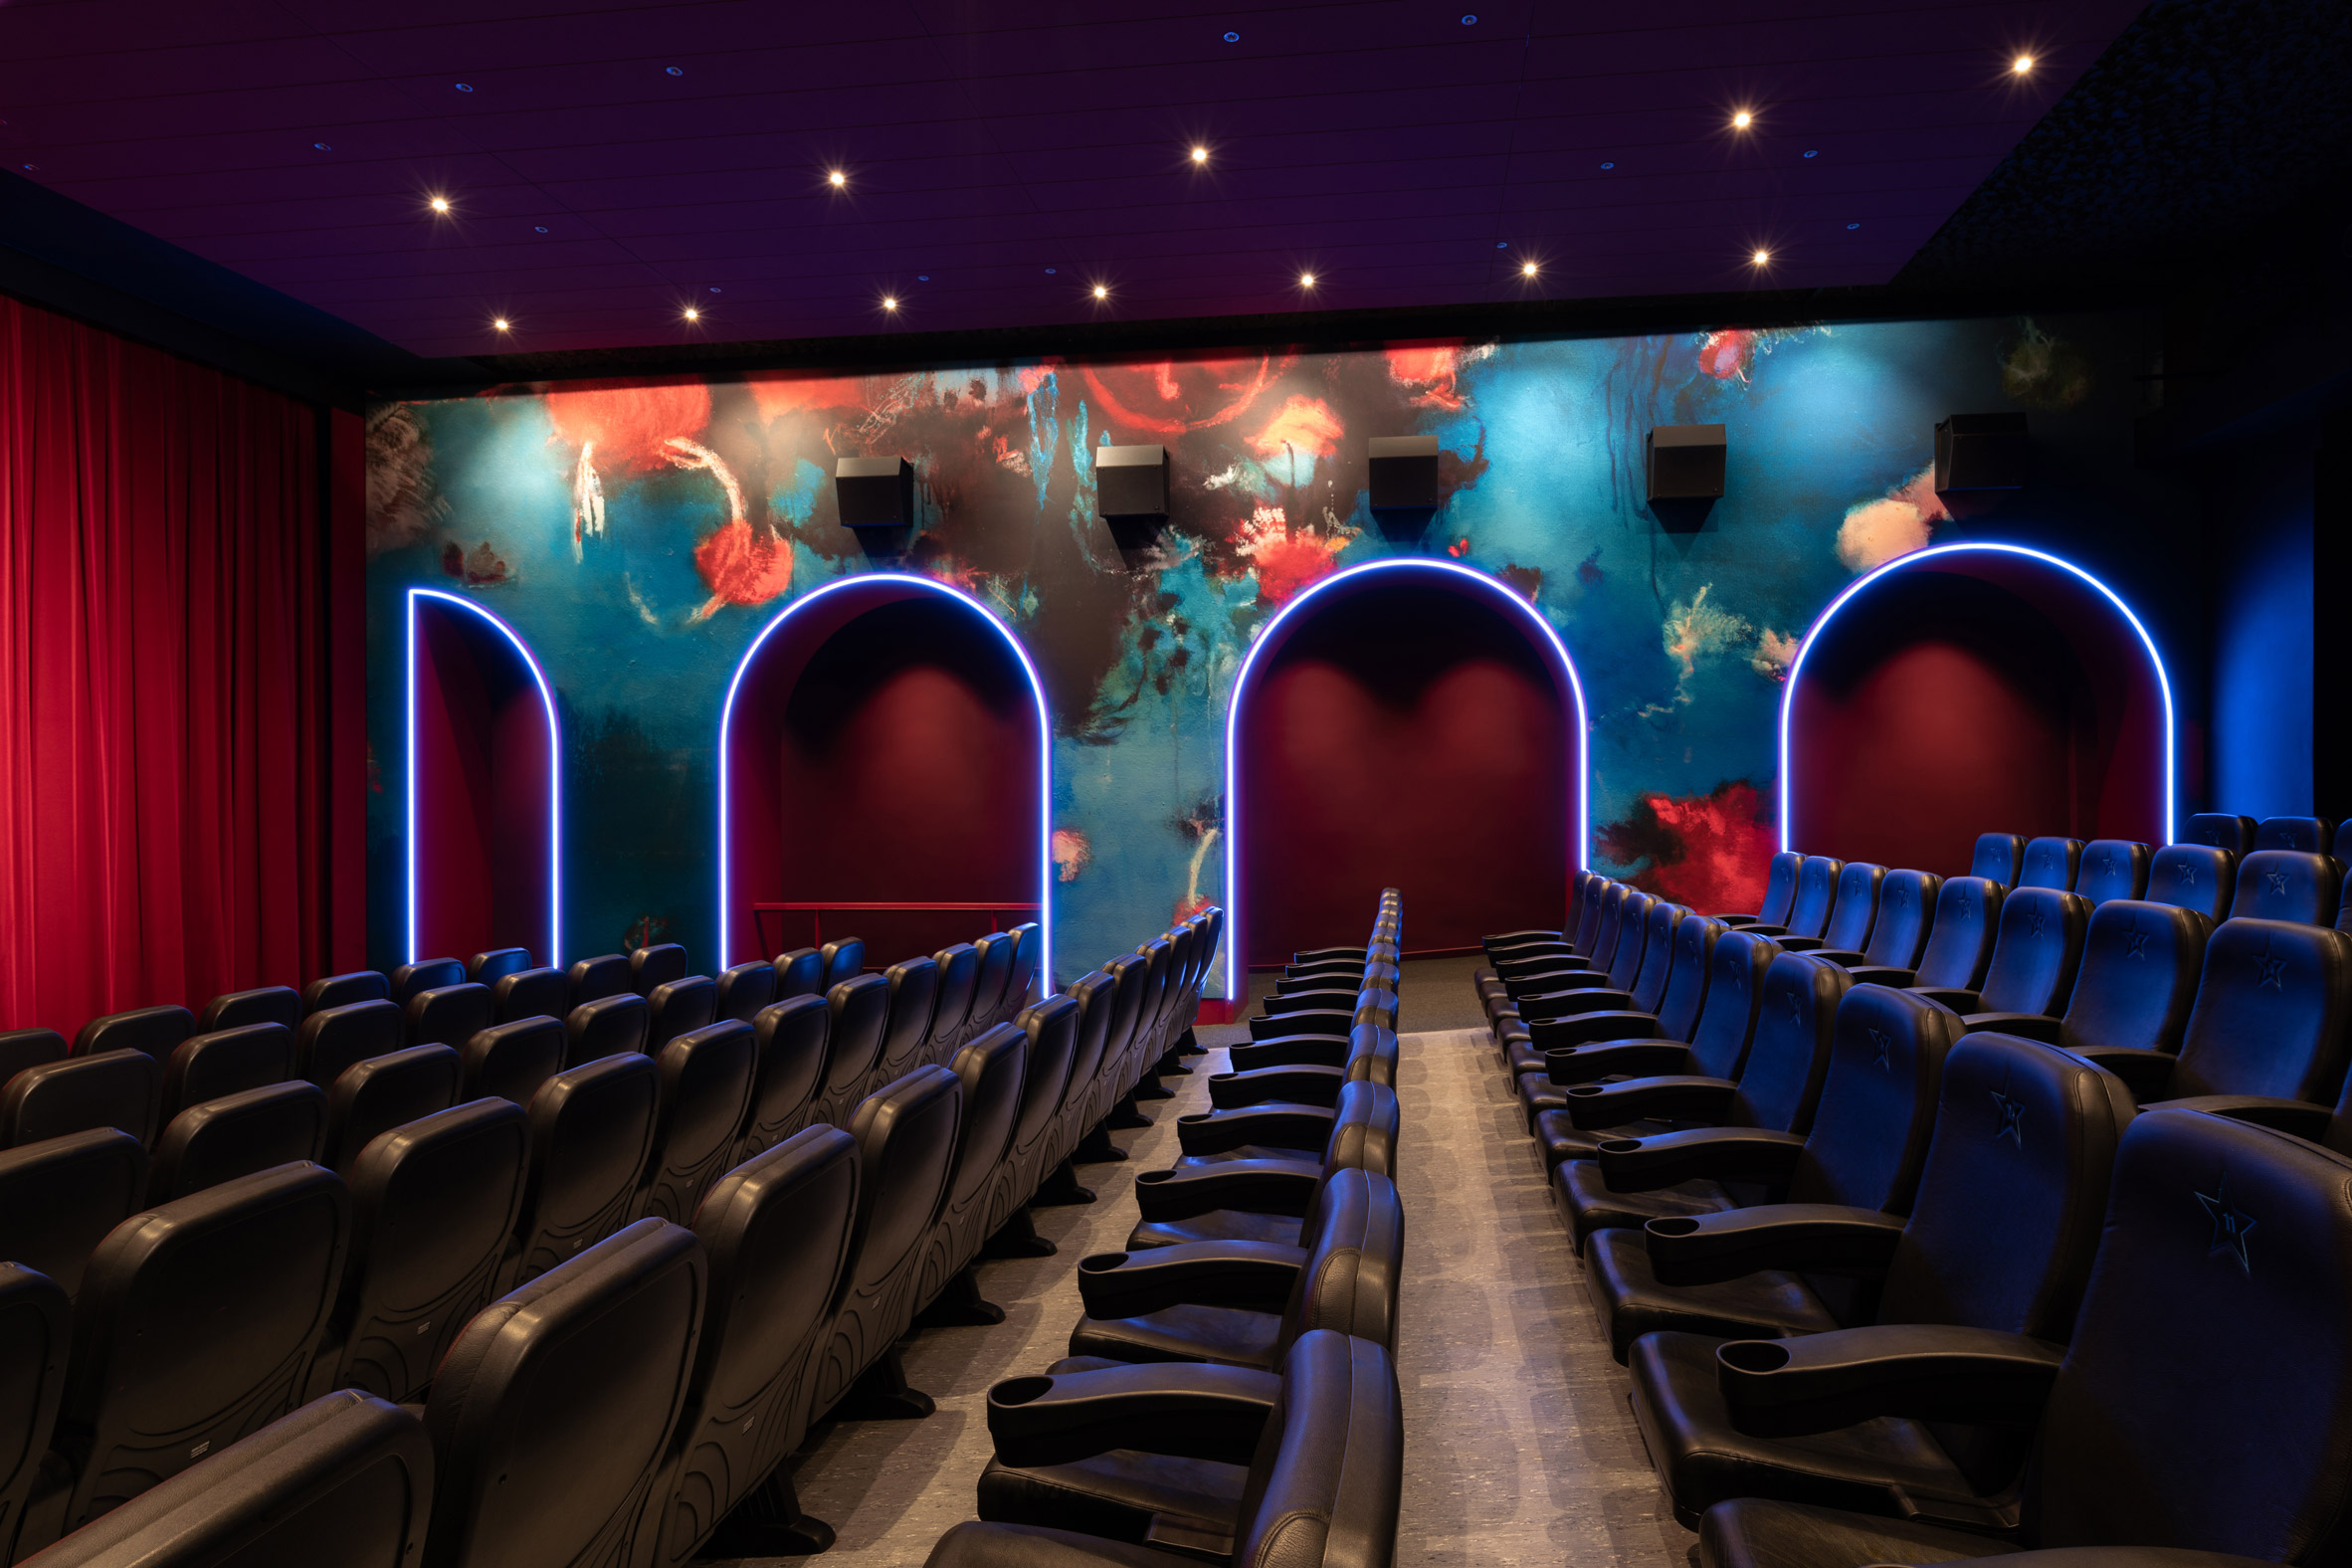 Cinema auditorium with neon decorations